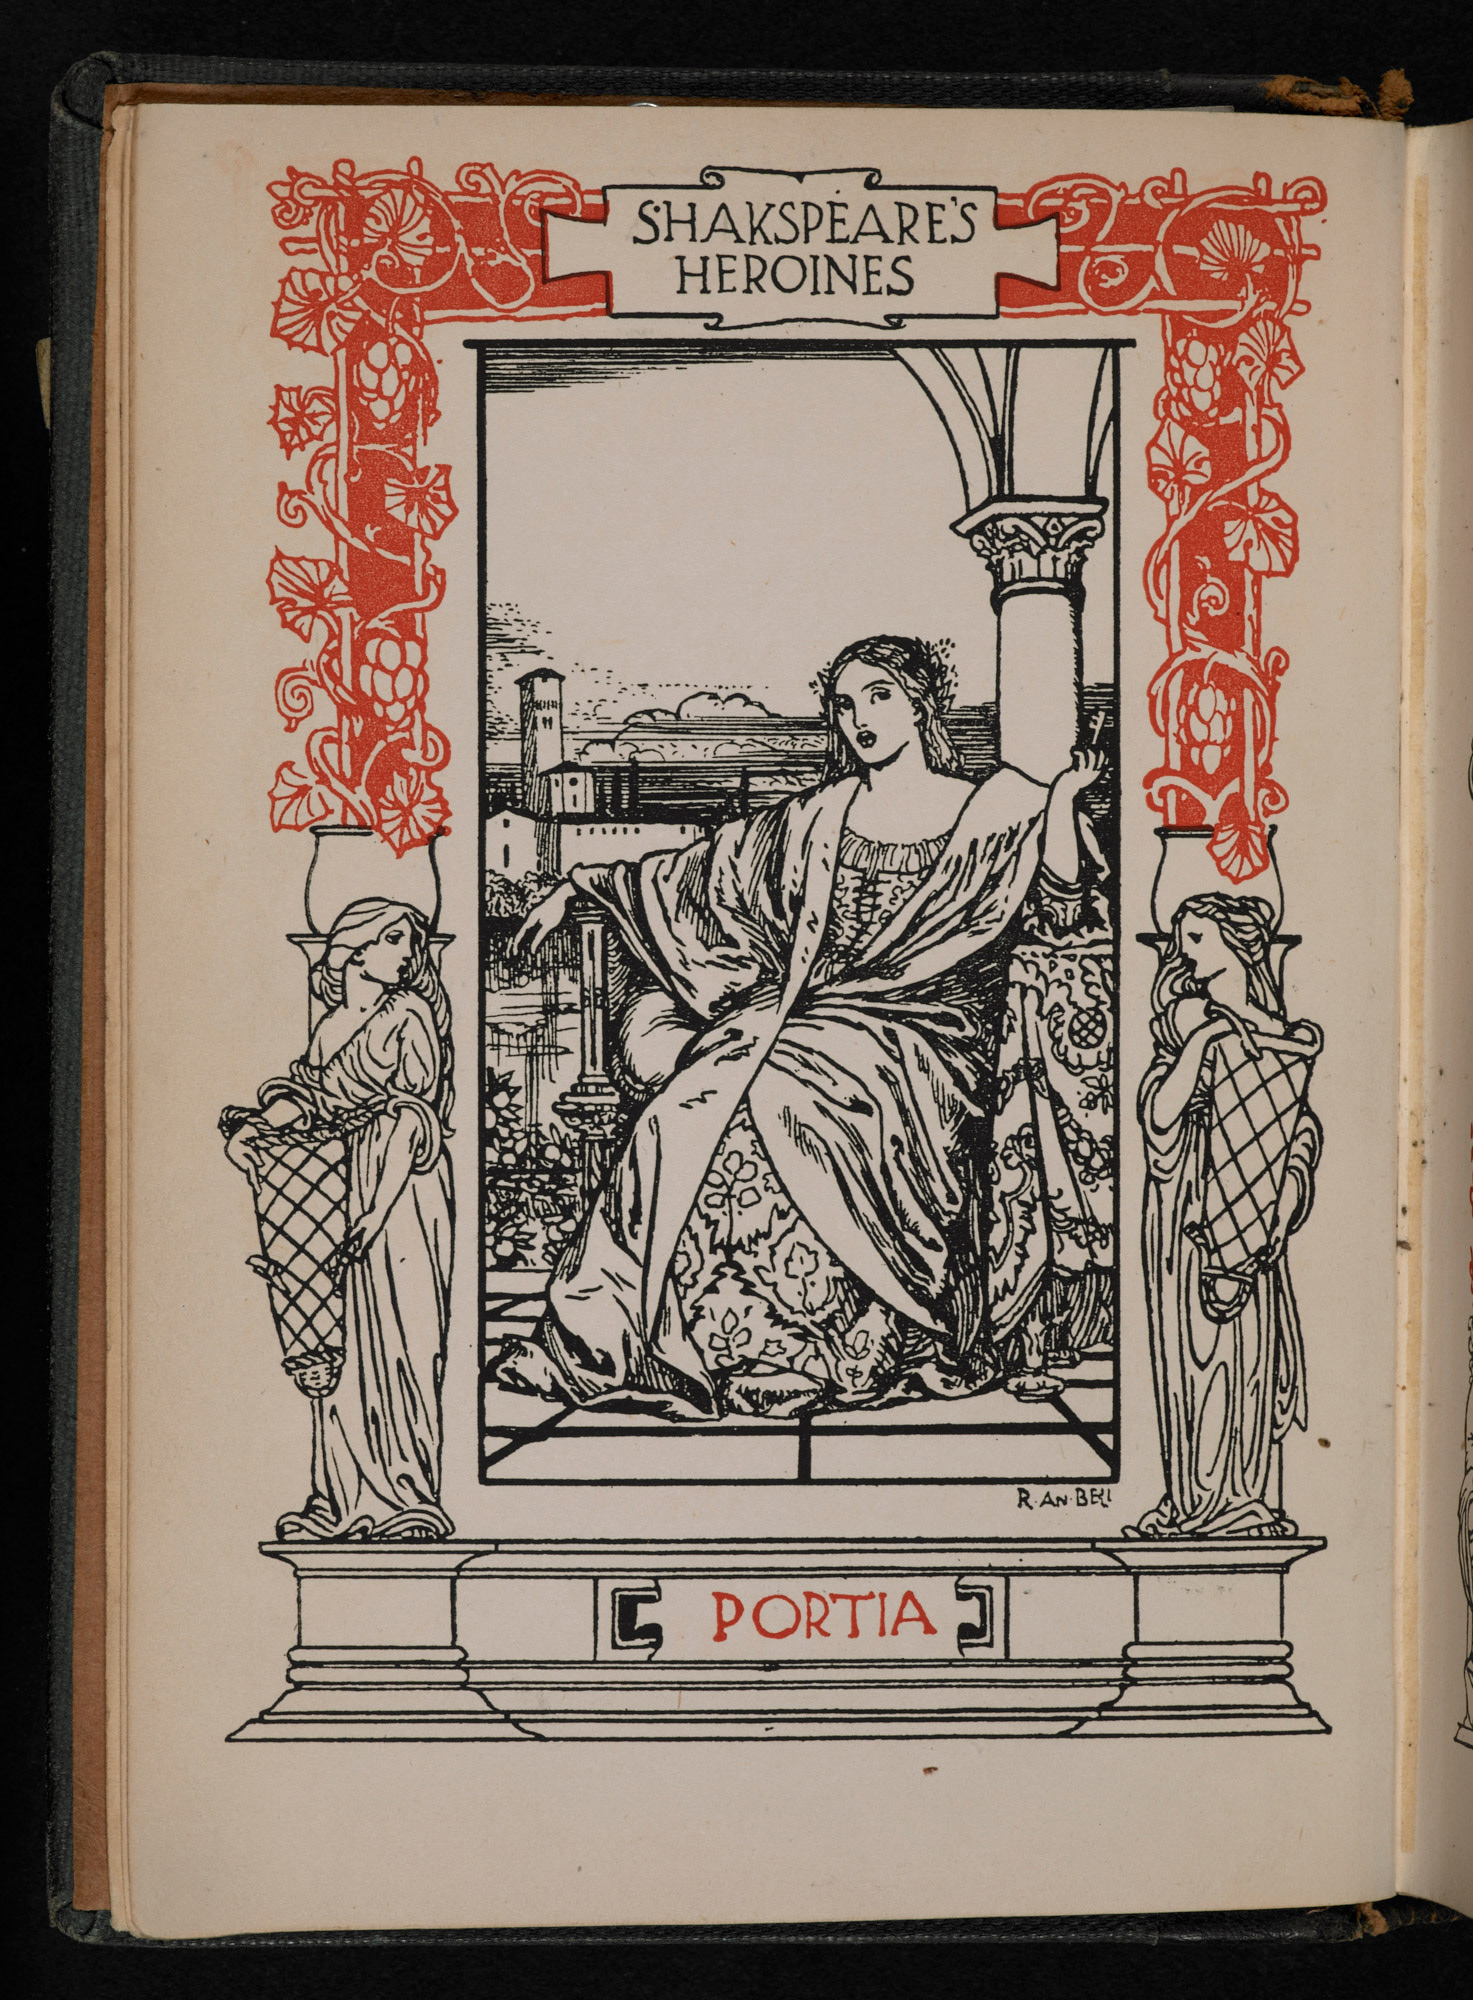 1901 edition of Anna Jameson's Shakespeare's Heroines